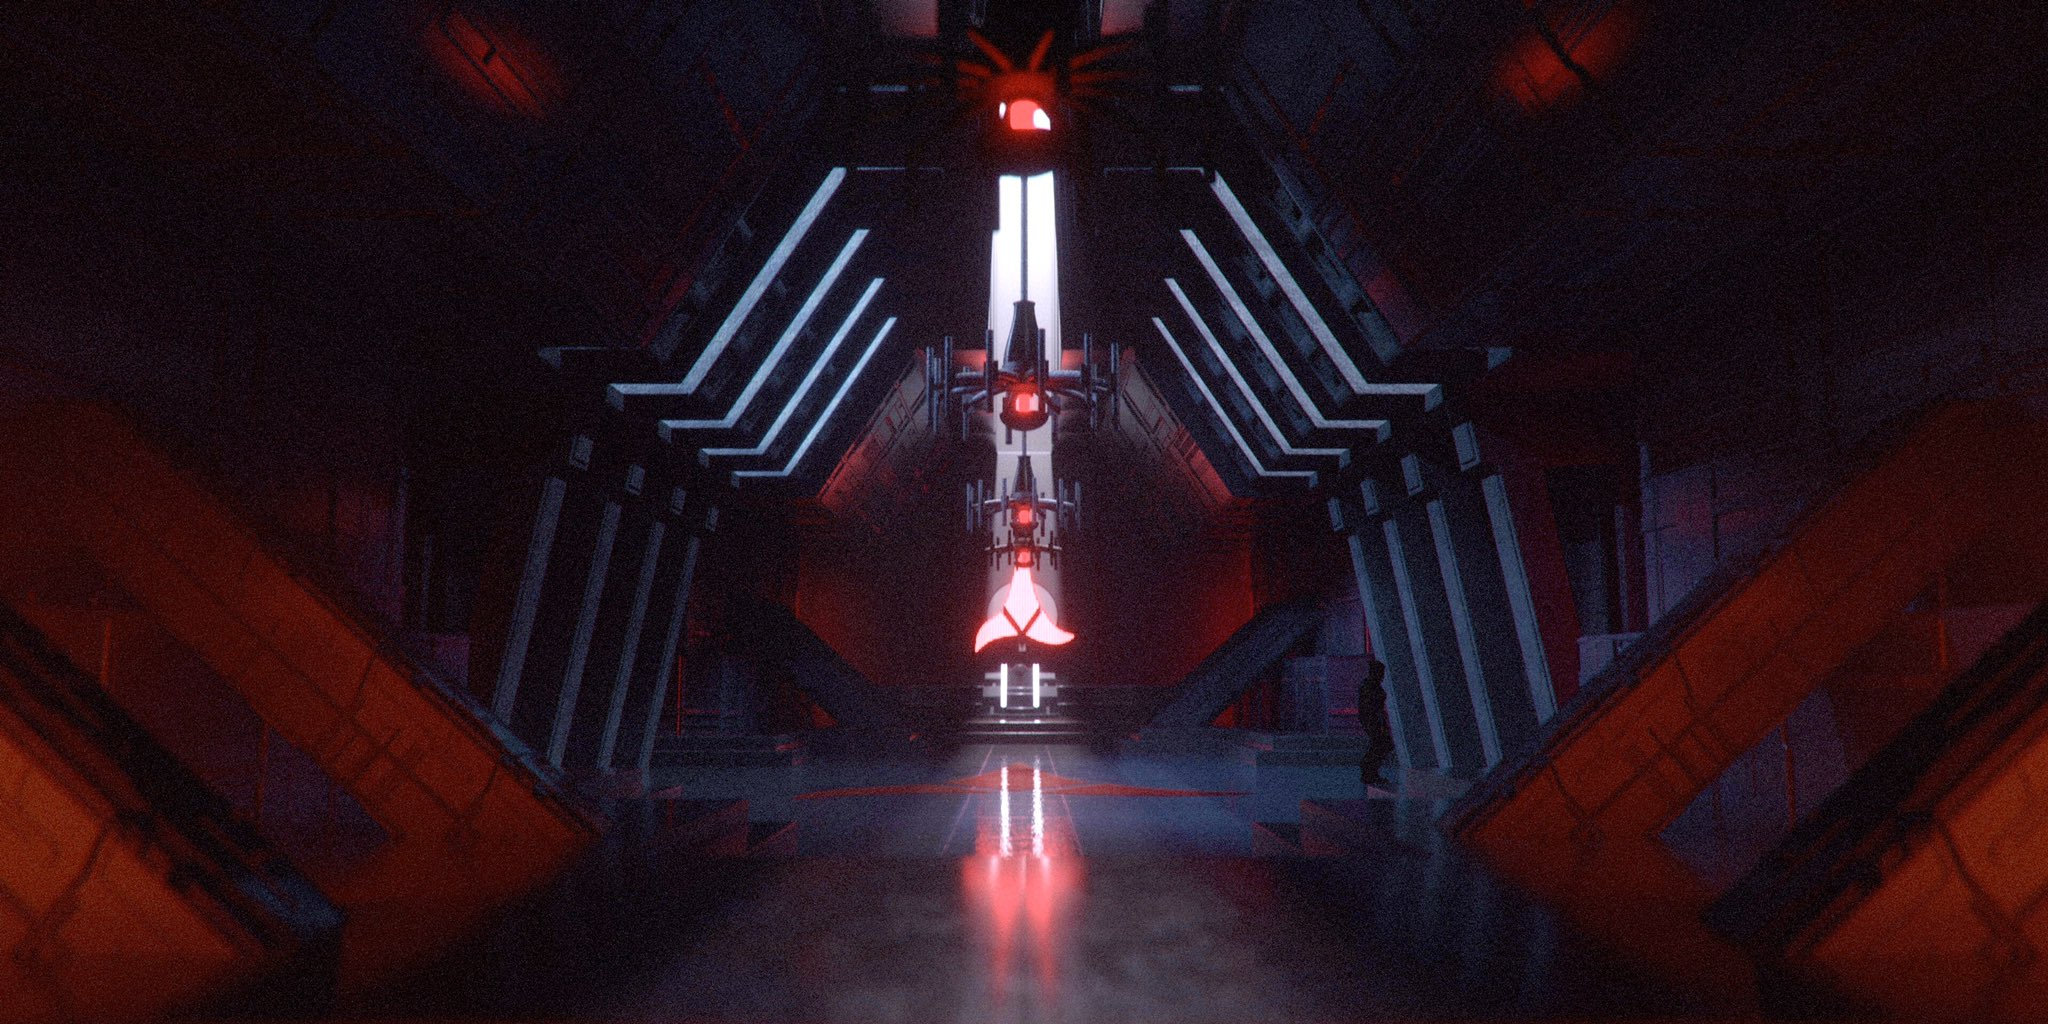 Ds9teasers On Twitter Interior Shot Of The Klingon Great Hall We Based This Shot On An Original Sketch Of Set And Production Designer Richard James In Which The Hall Was Larger And More Cathedral Like Startrek Ds9 Https T Co Xibigdggv8 Https T Co